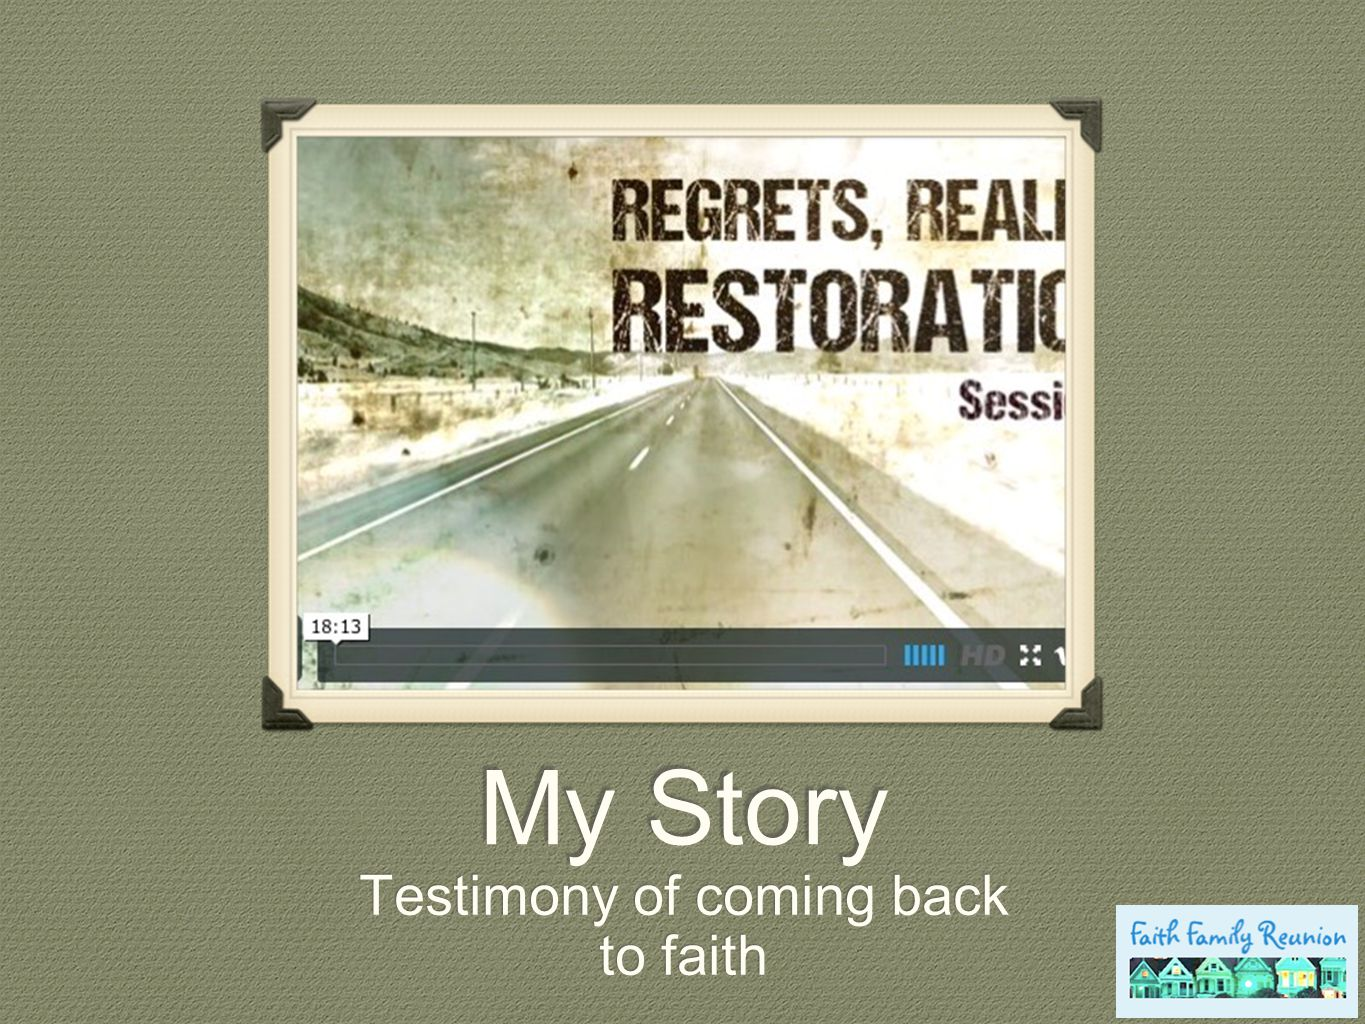 My Story Testimony of coming back to faith